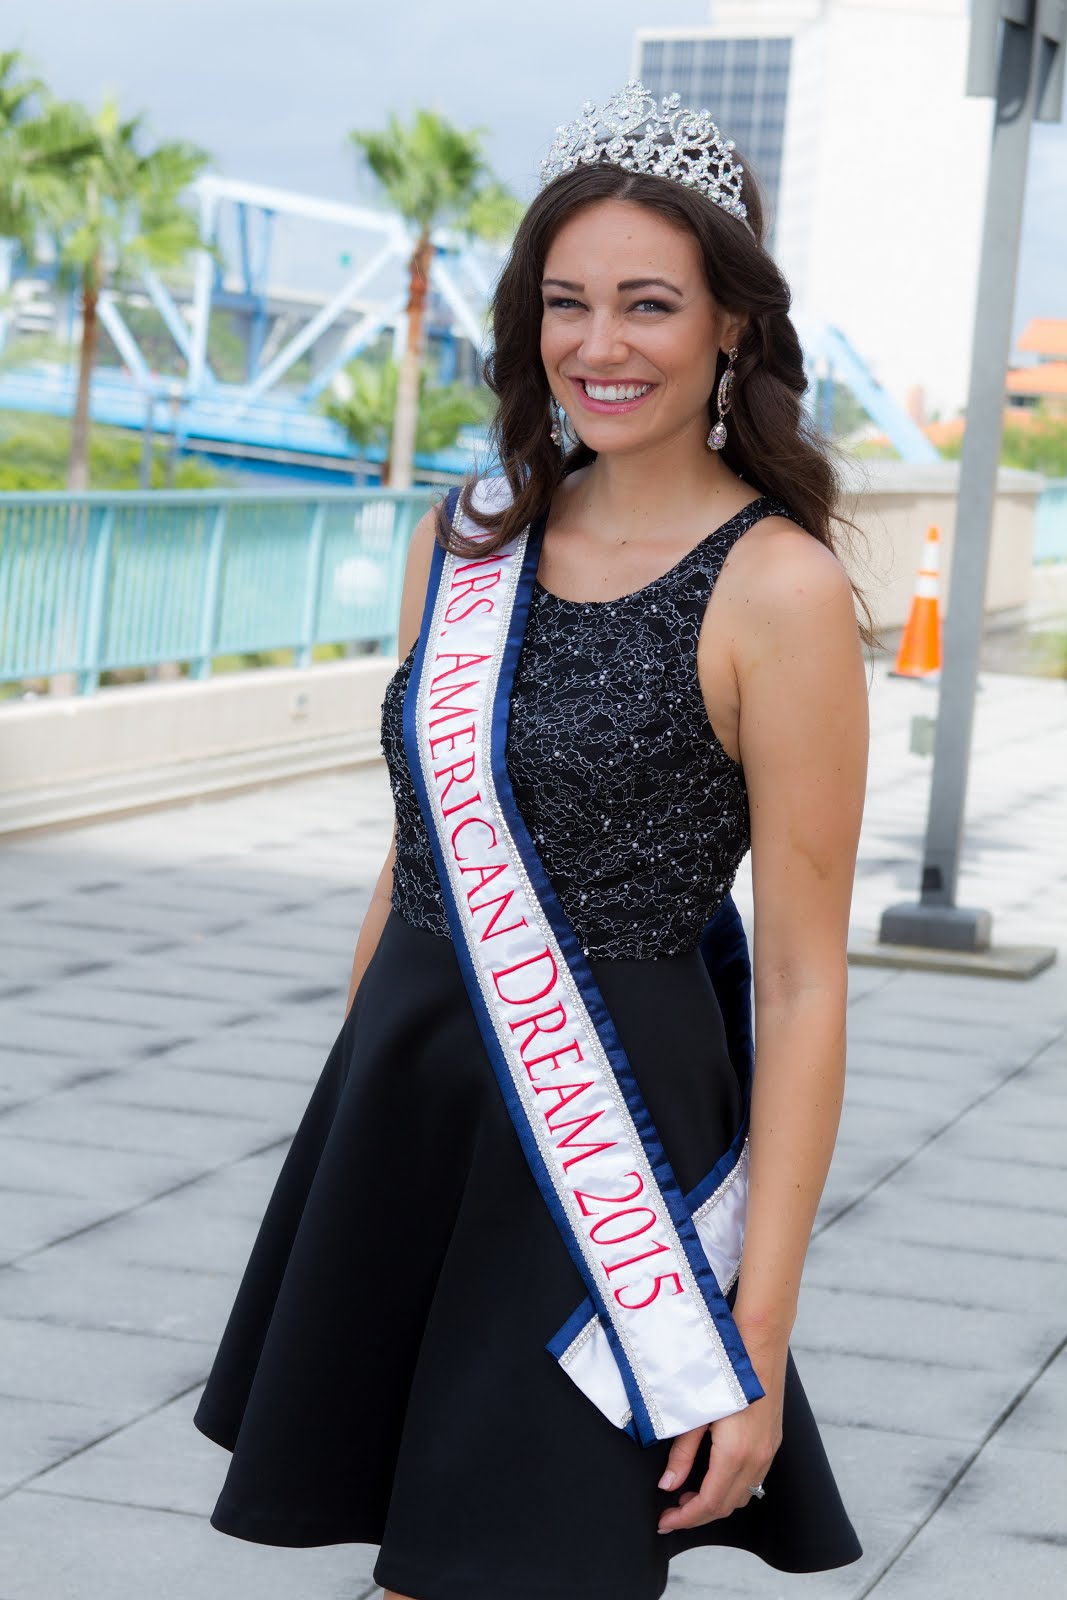 Mrs. American Dream 2015